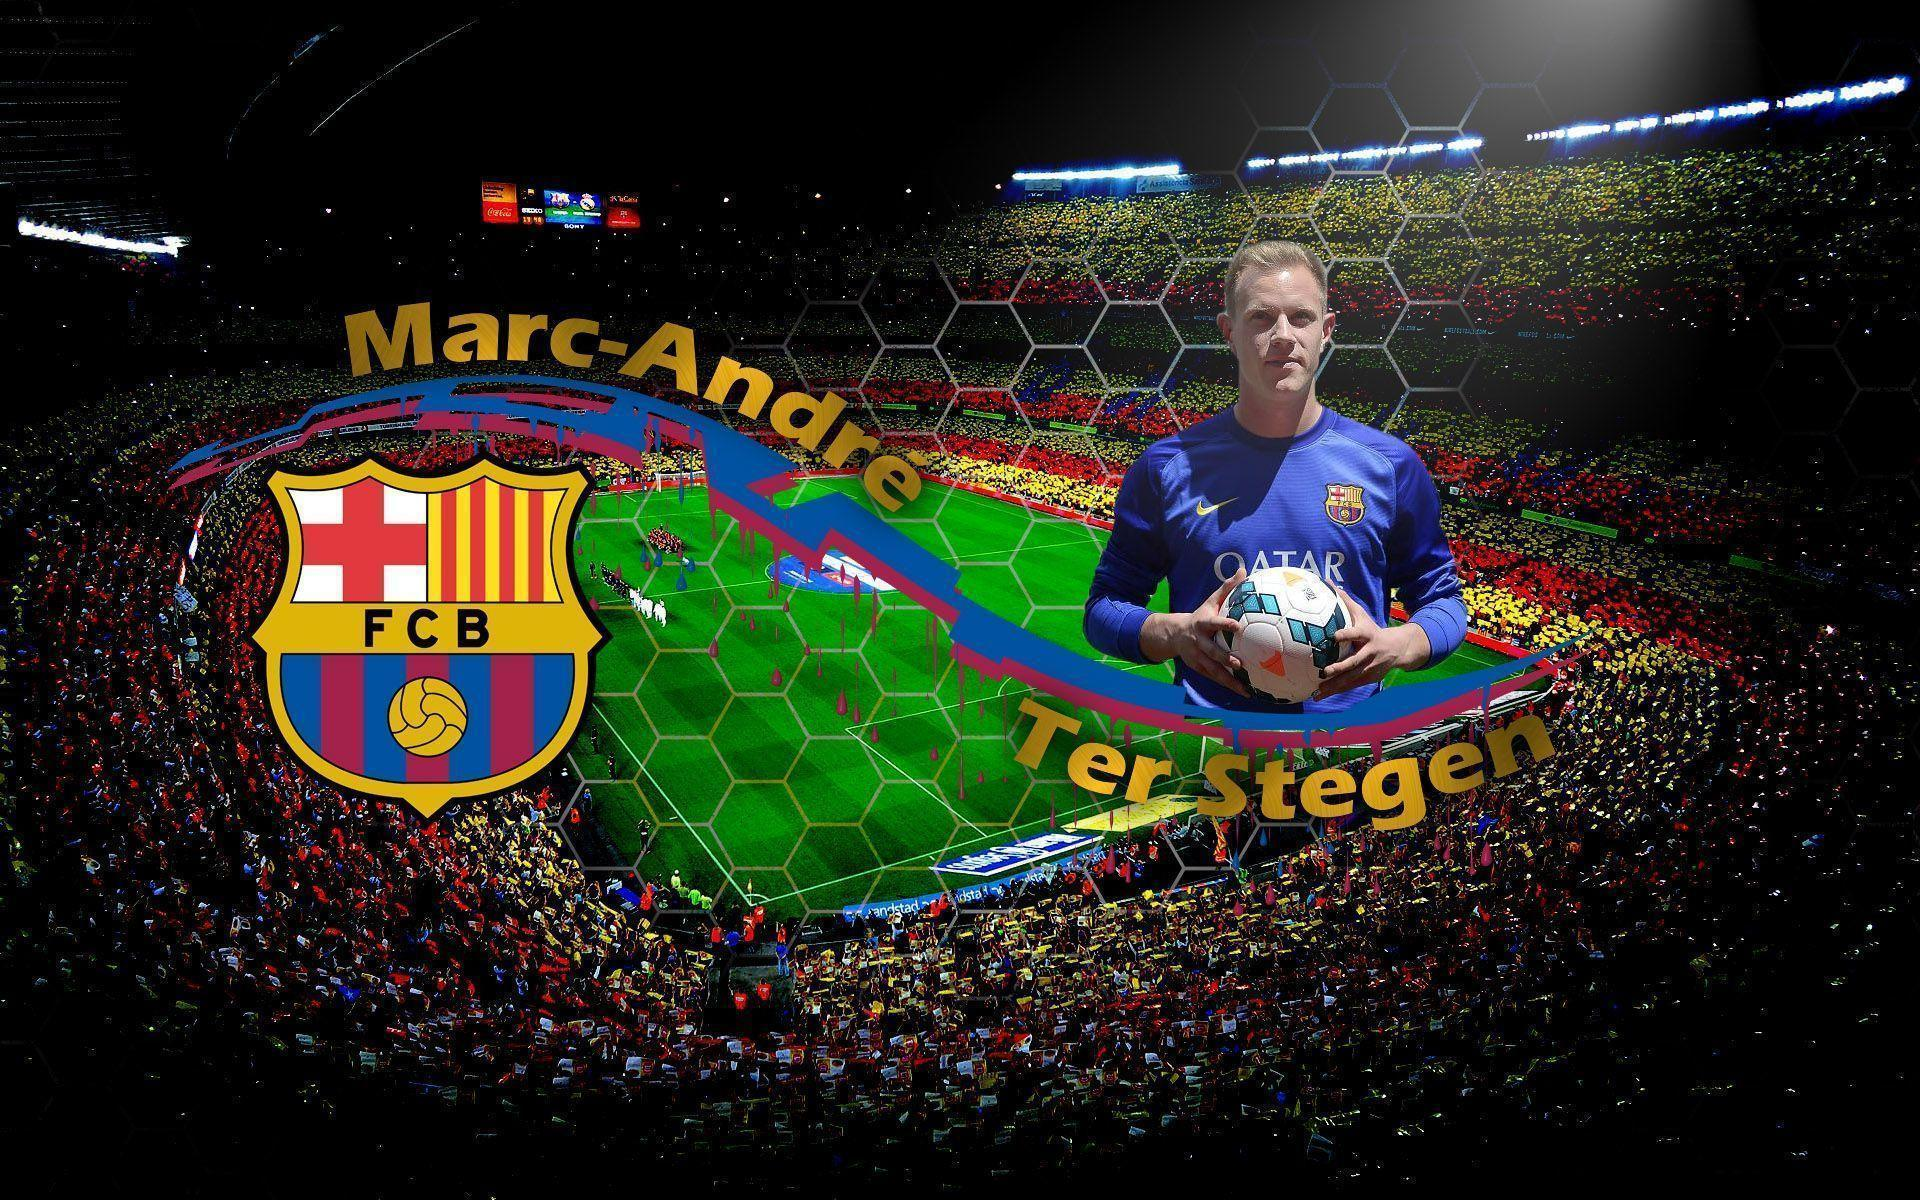 Wallpapers Tagged FC Barcelona Wide or HD | WallWideHD.